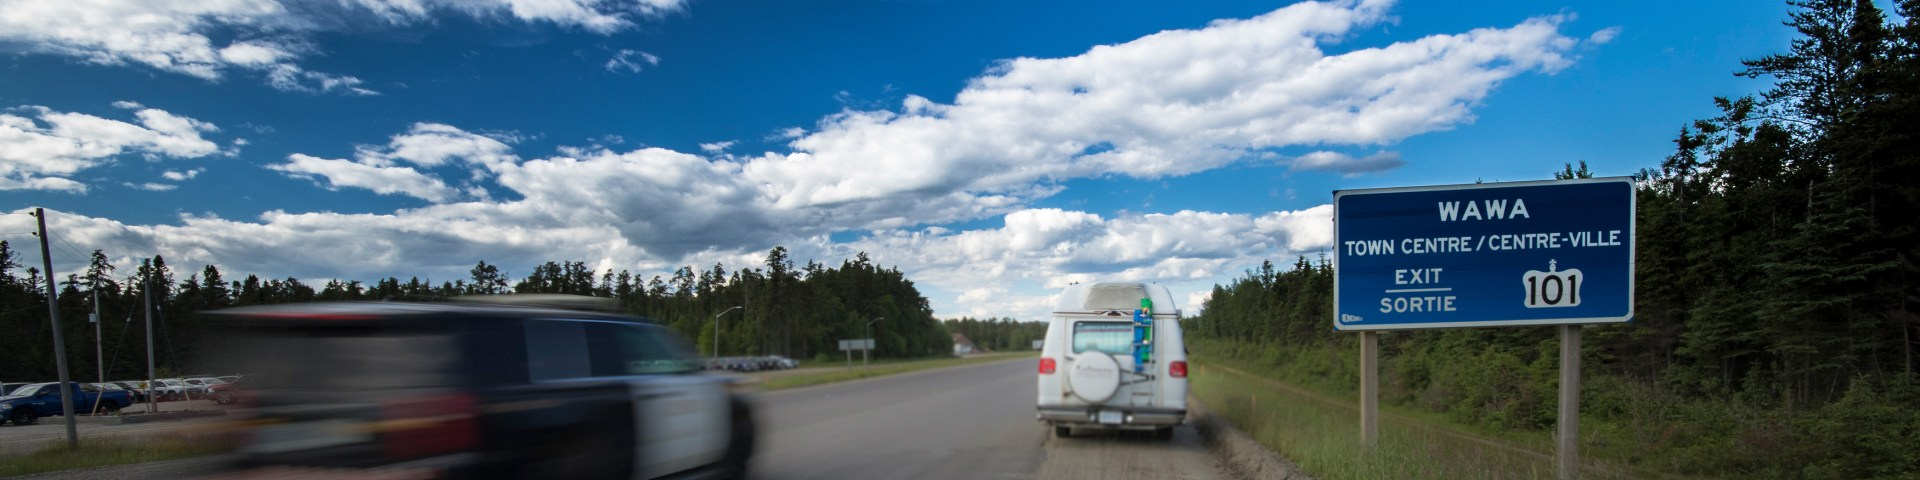 VanLife - Thunder Bay or Bust